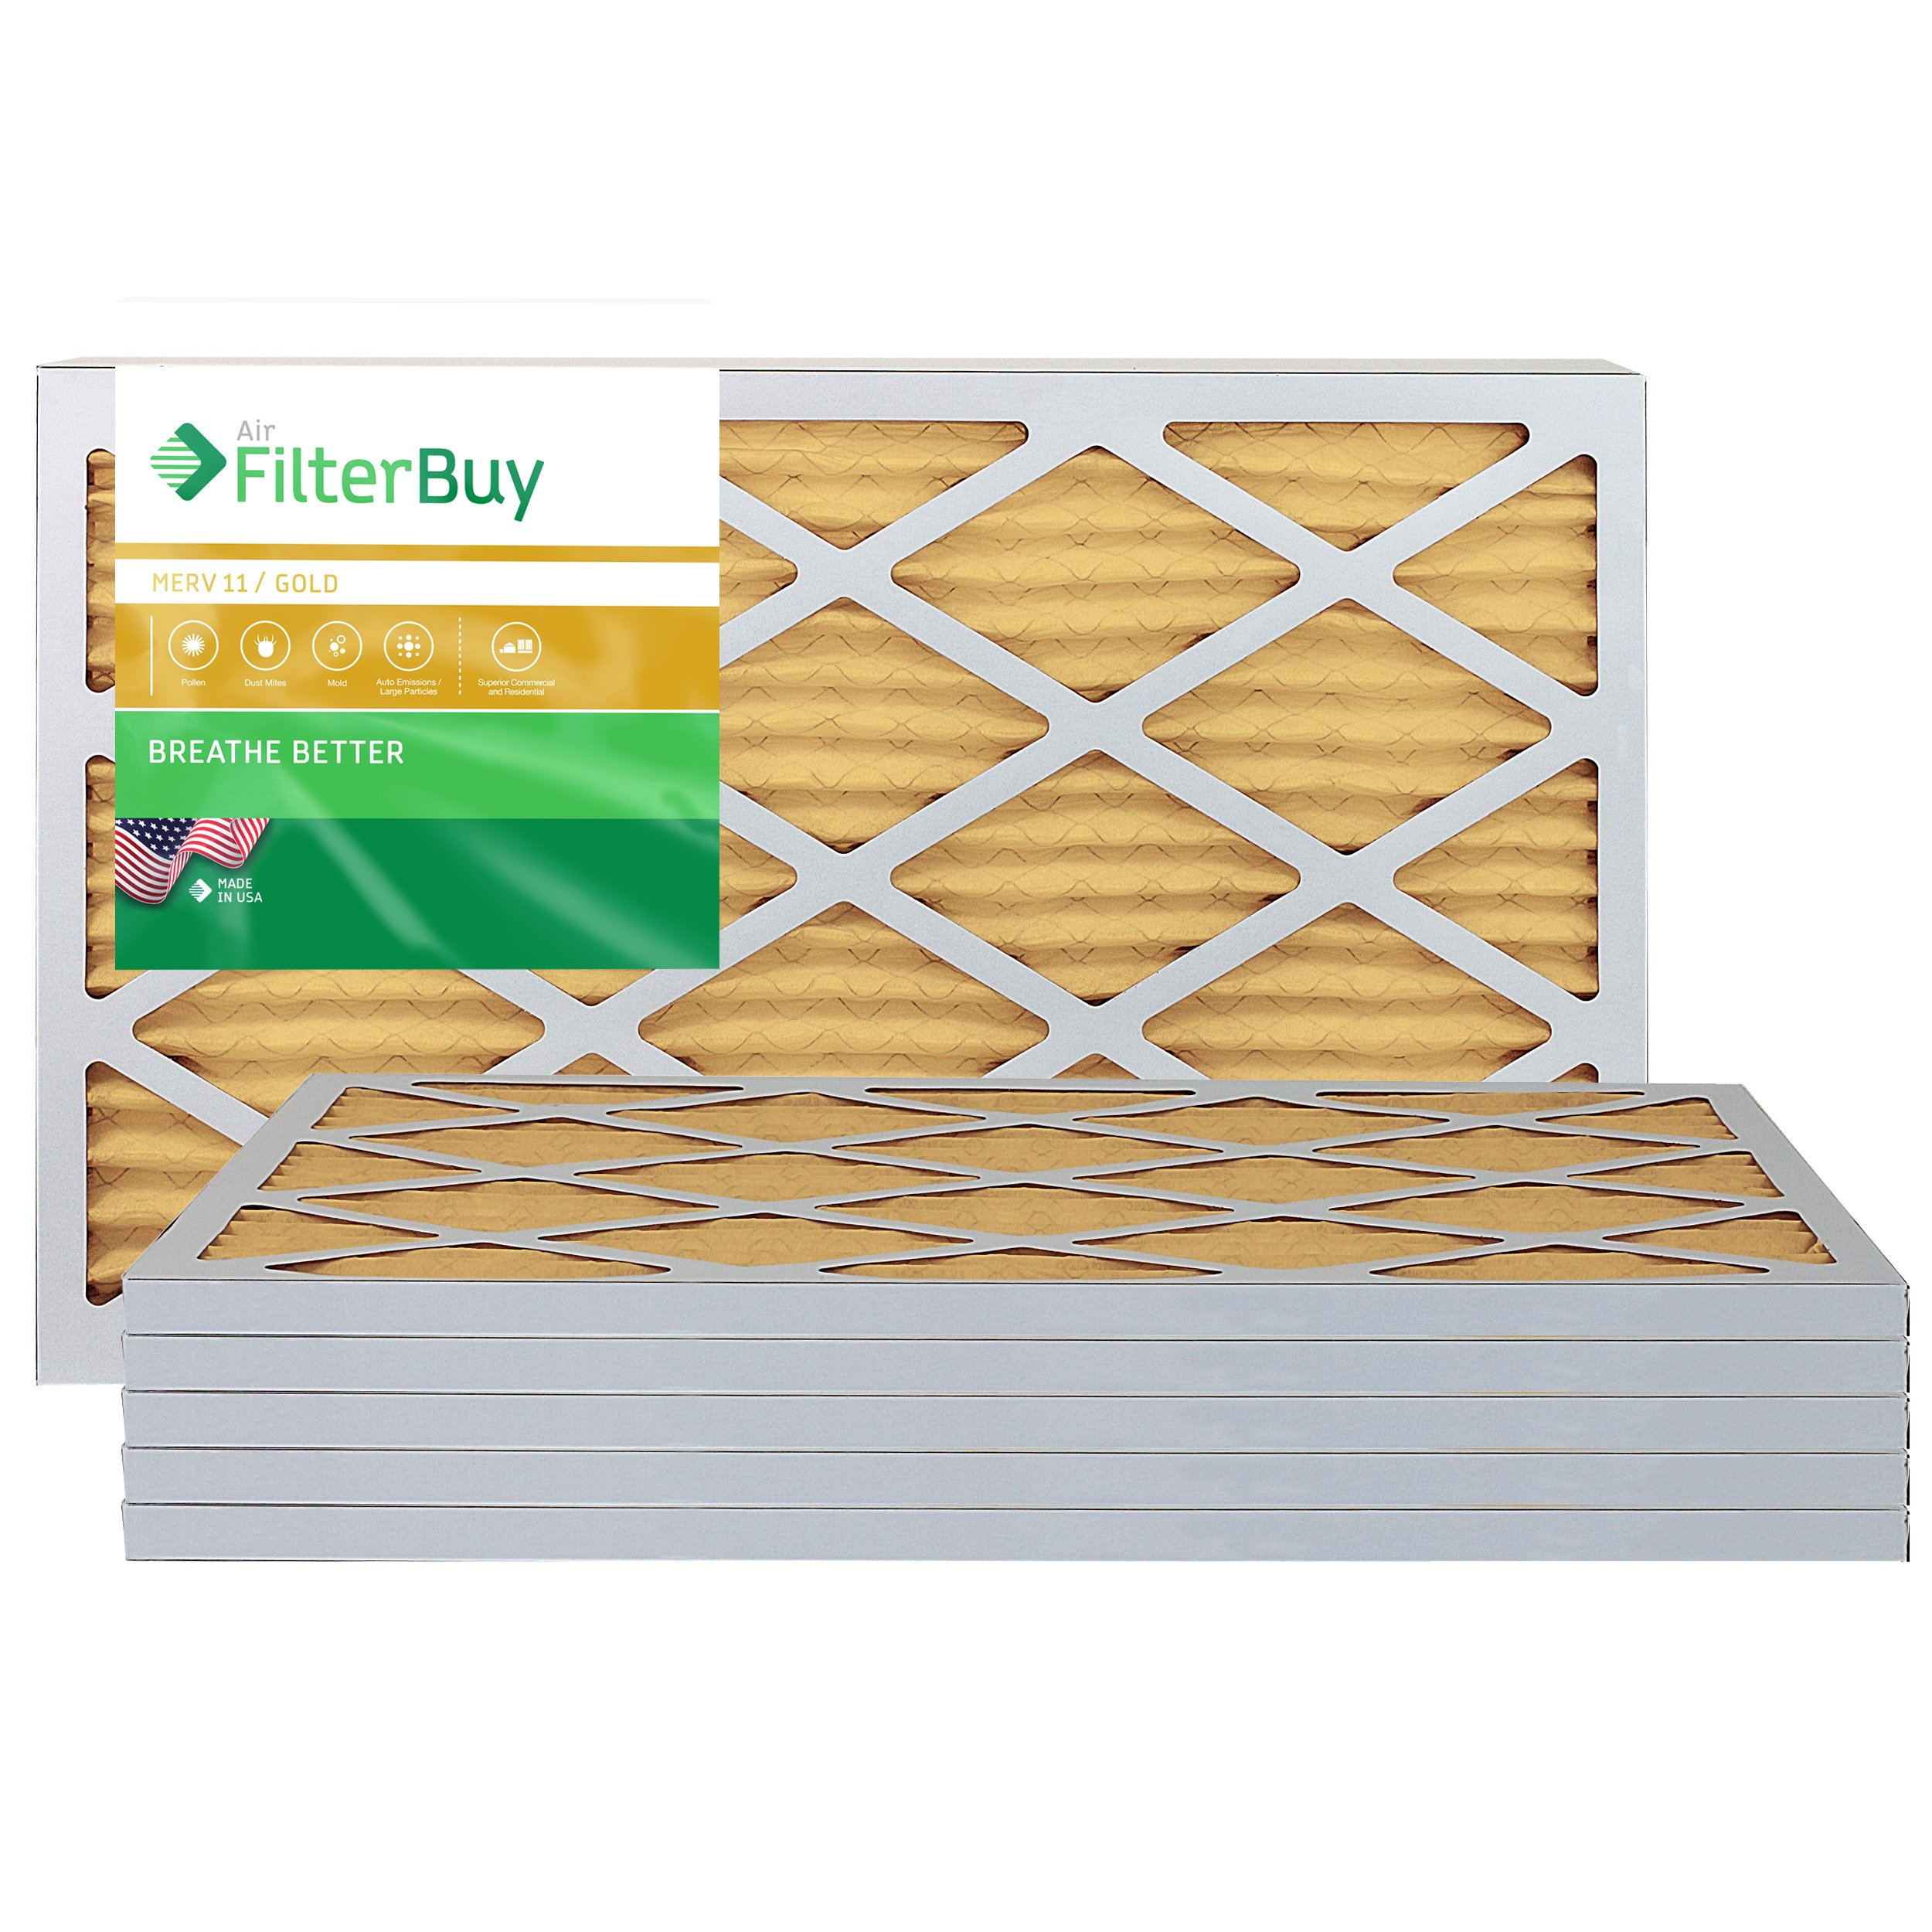 FilterBuy 14x20x1 MERV 11 Pleated AC Furnace Air Filter, (Pack of 6 Filters), 14x20x1 – Gold